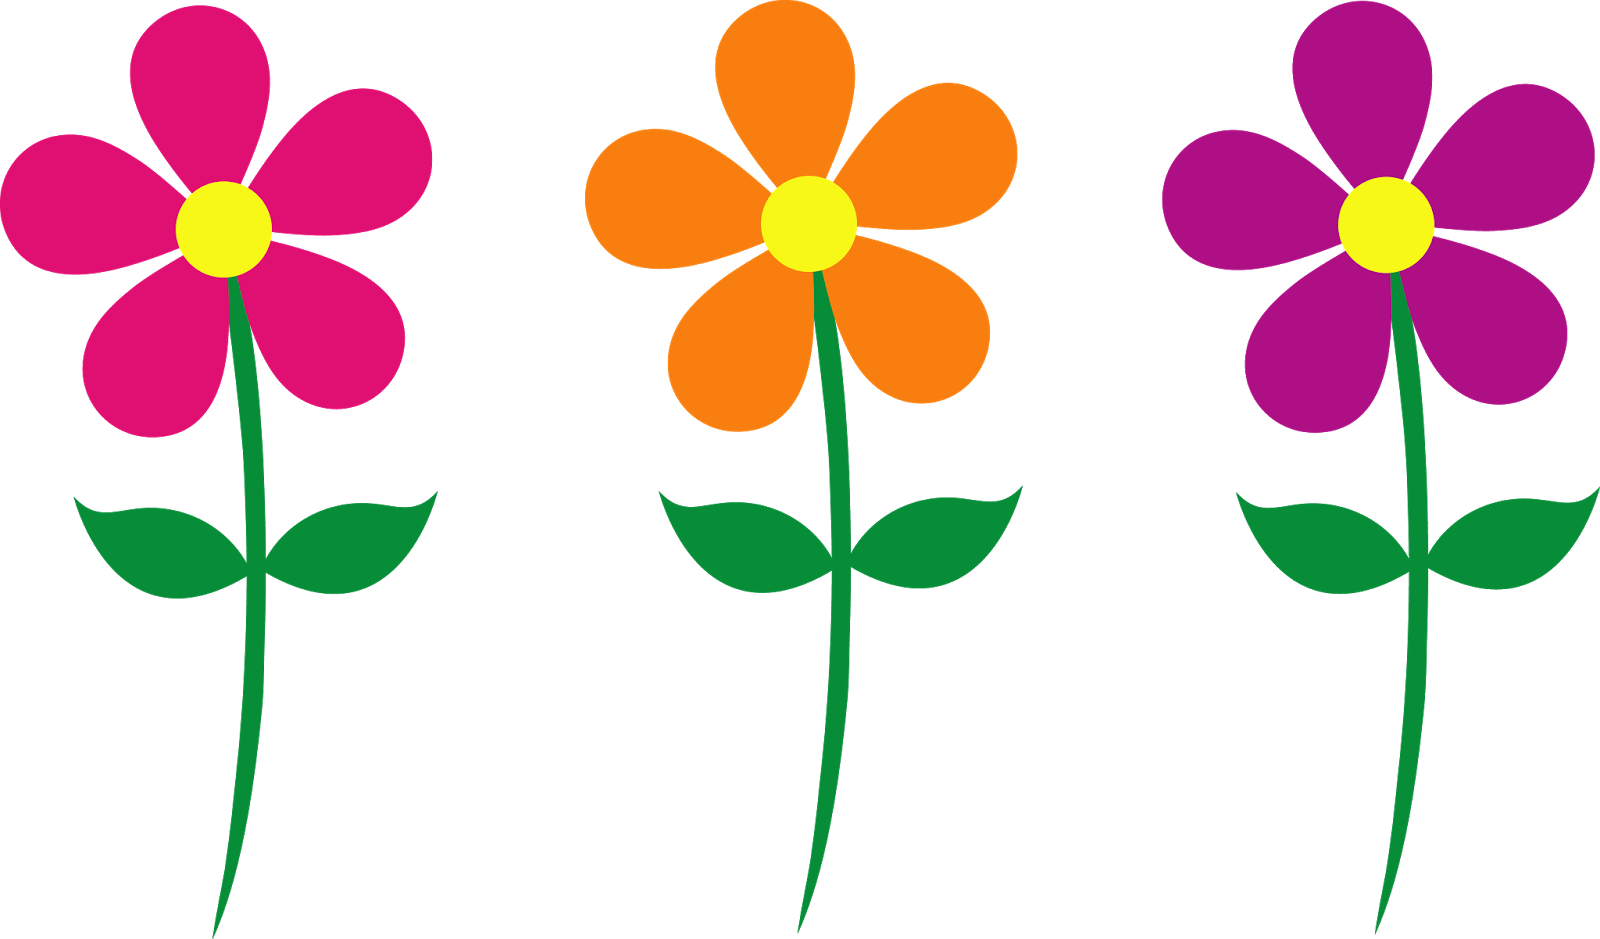 Flower free clipart. Thank you flowers panda